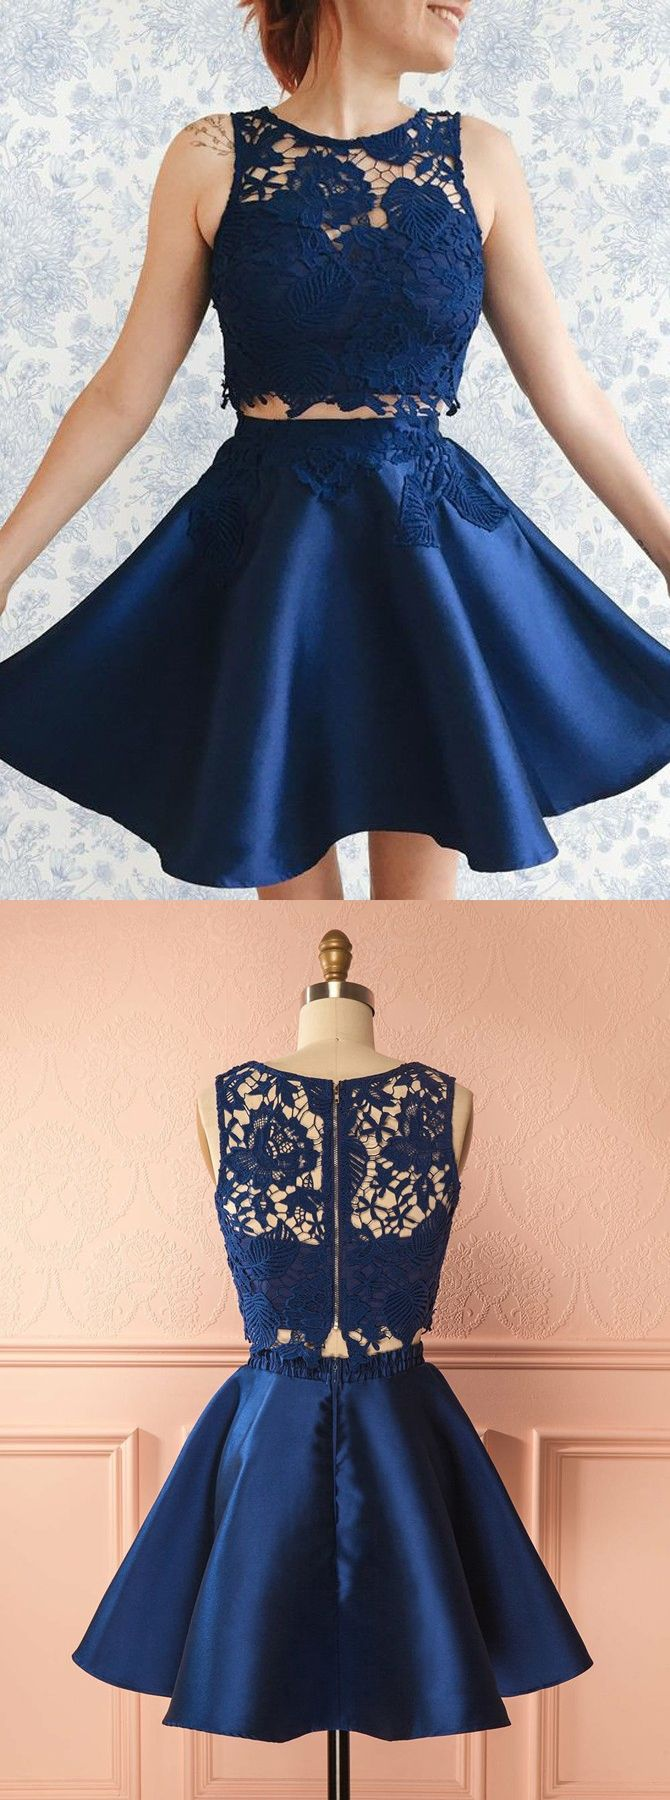 Two piece dark blue homecoming dressescute lace short prom dress